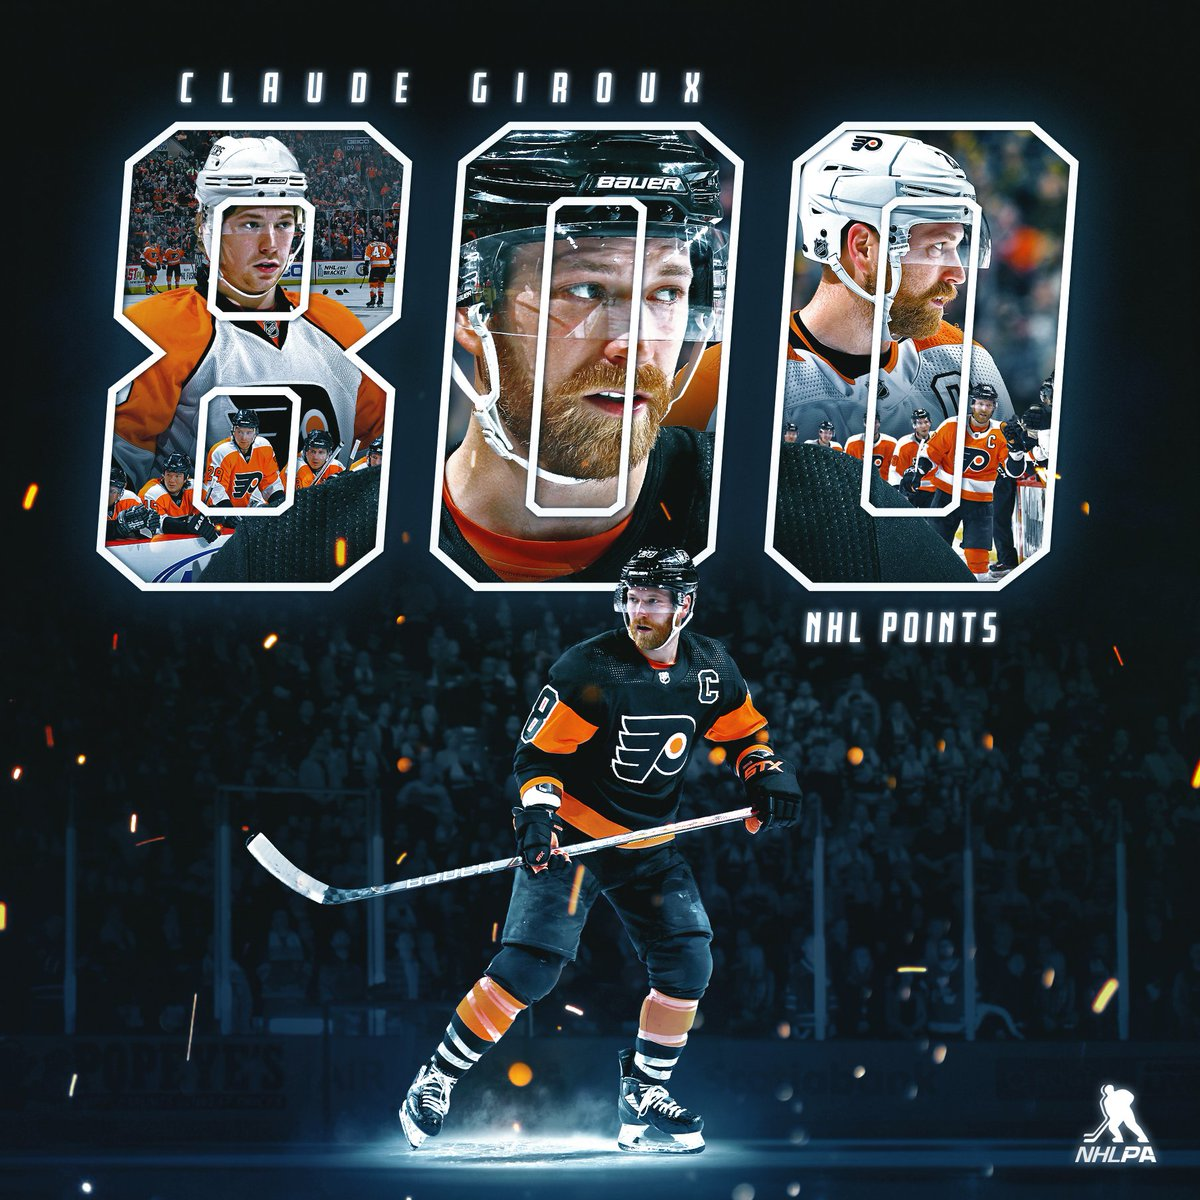 Replying to @NHLPA: That's 800 NHL career points for the @NHLFlyers captain – congrats to @28CGiroux!